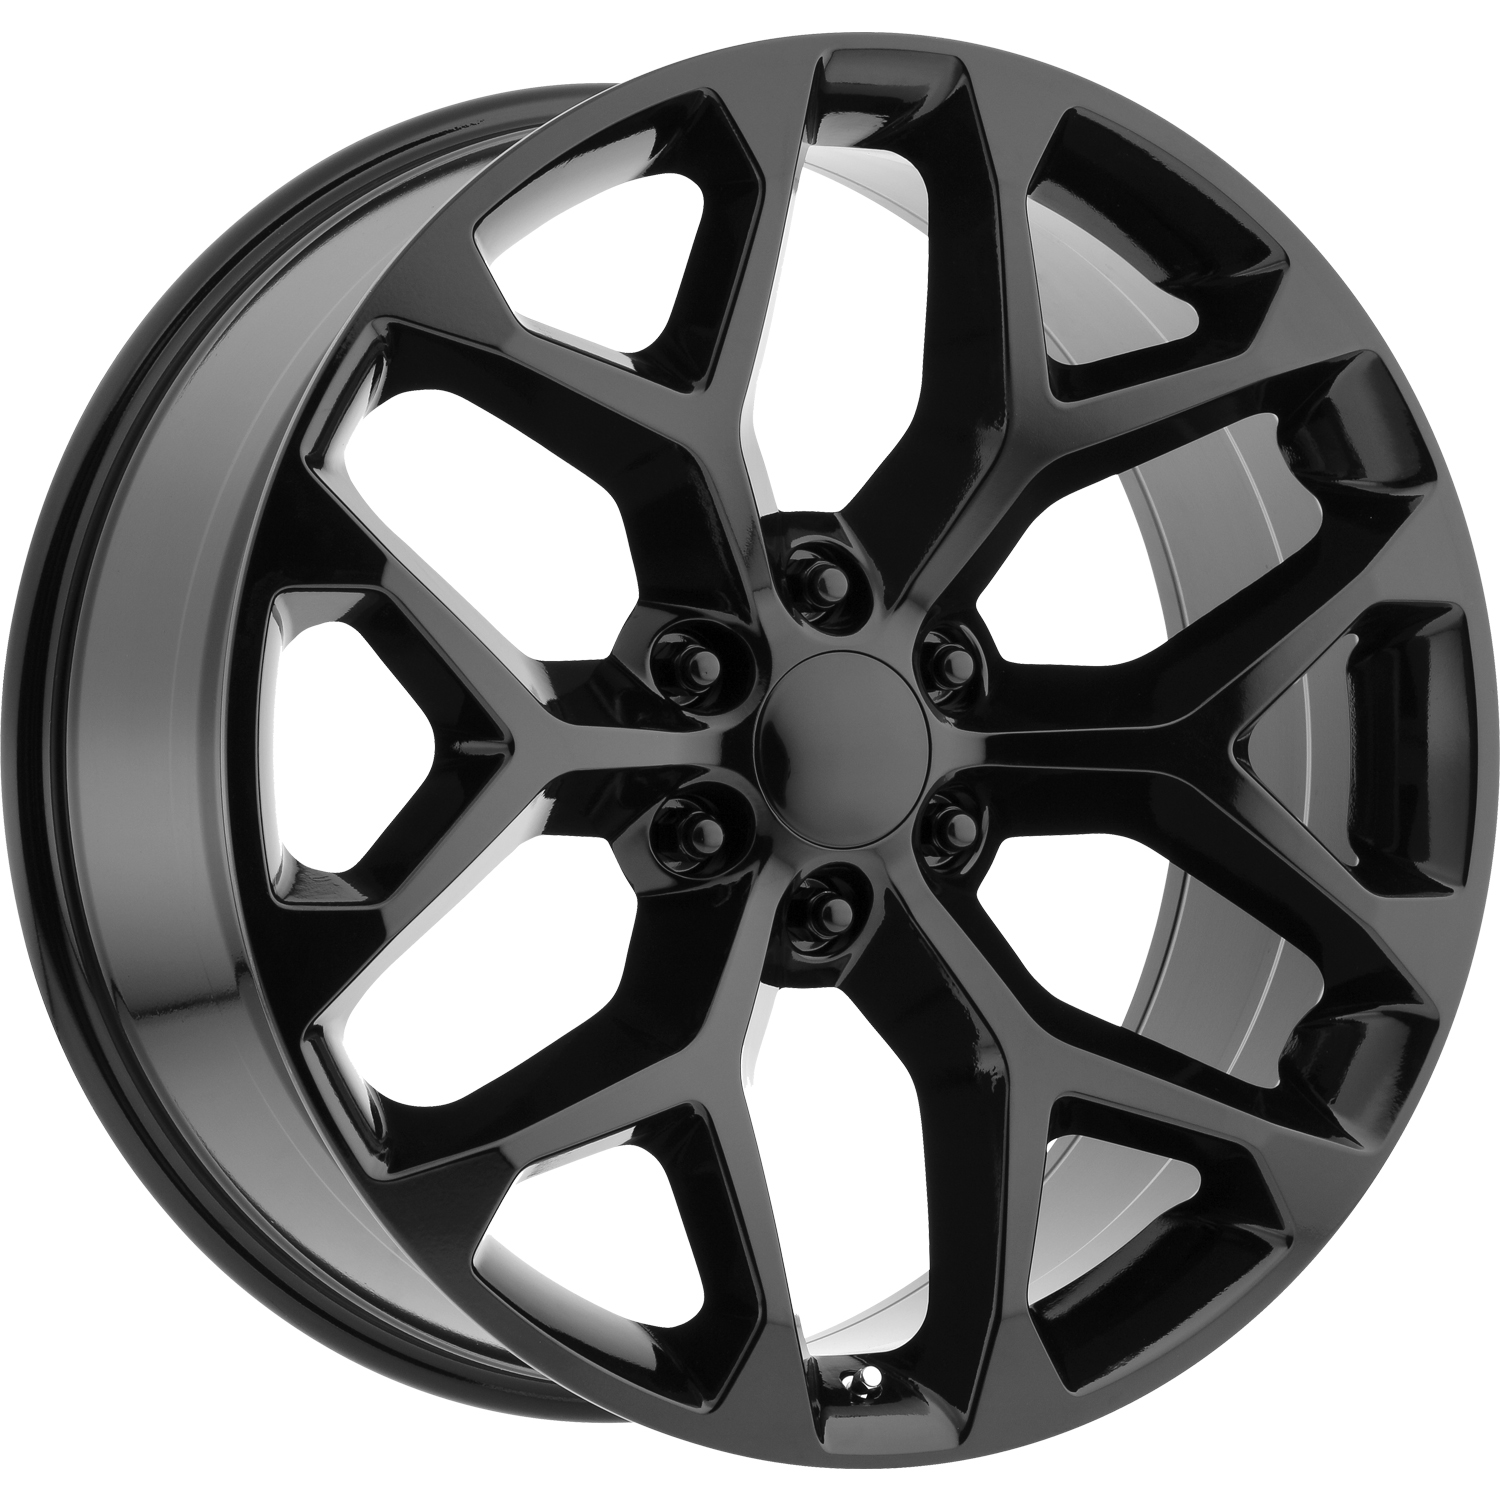 OE Performance 176 24x10 +31mm | 176GB 2415831